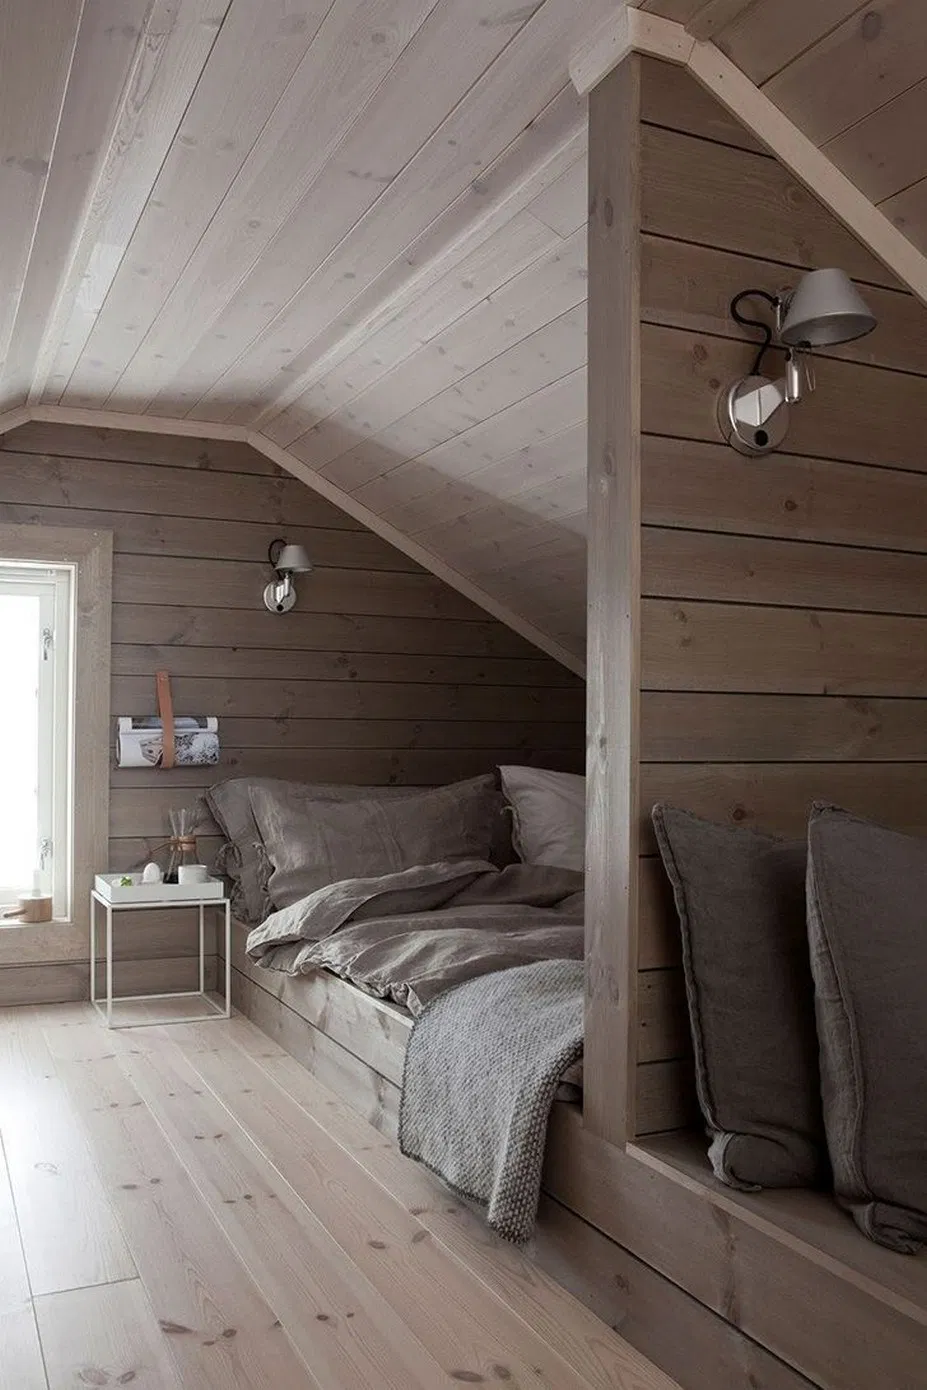 10 Amazing Attic Room Ideas For Your Inspiration 1 Attic Bedroom Small Attic Bedroom Designs Bedroom Interior